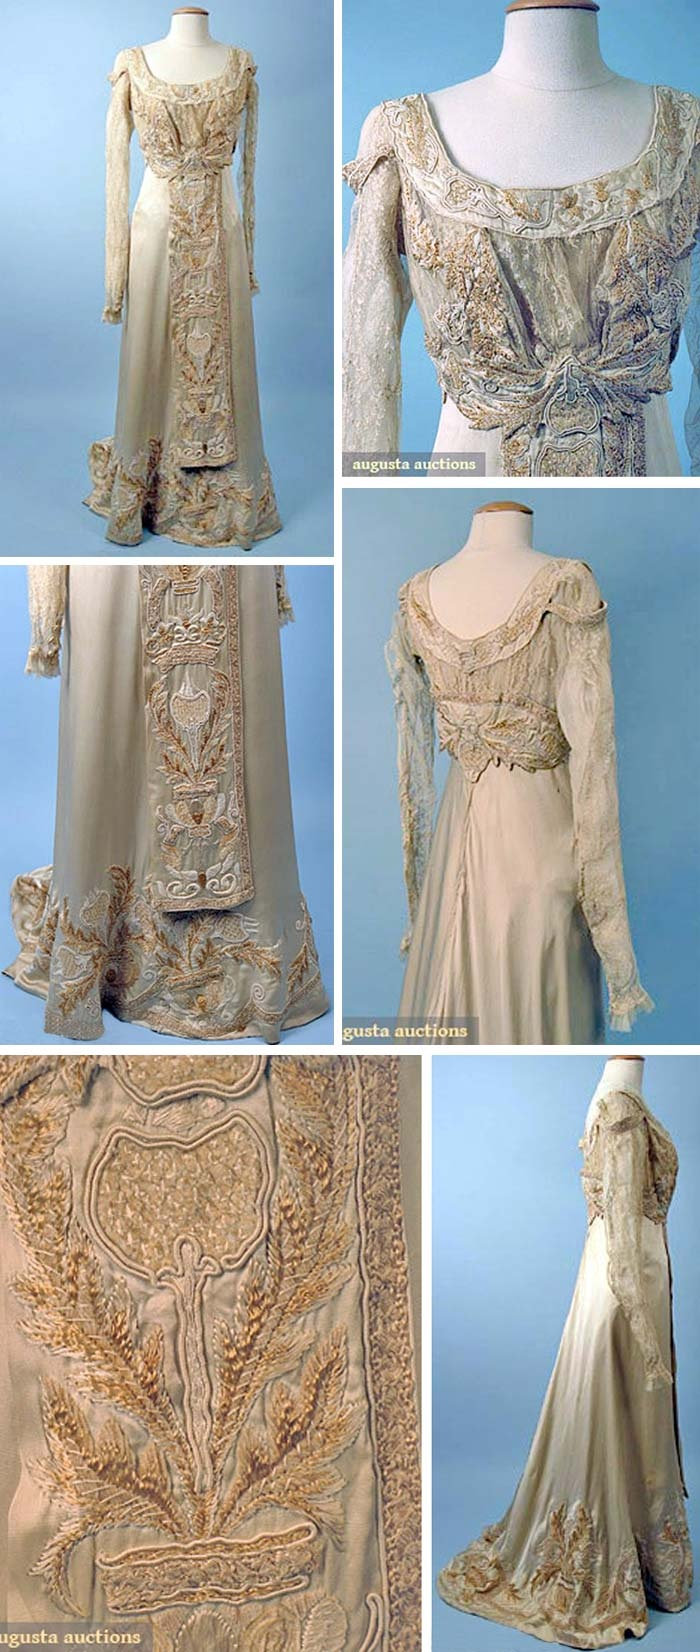 29 best 1912 wedding gowns images on Pinterest | Homecoming dresses ...